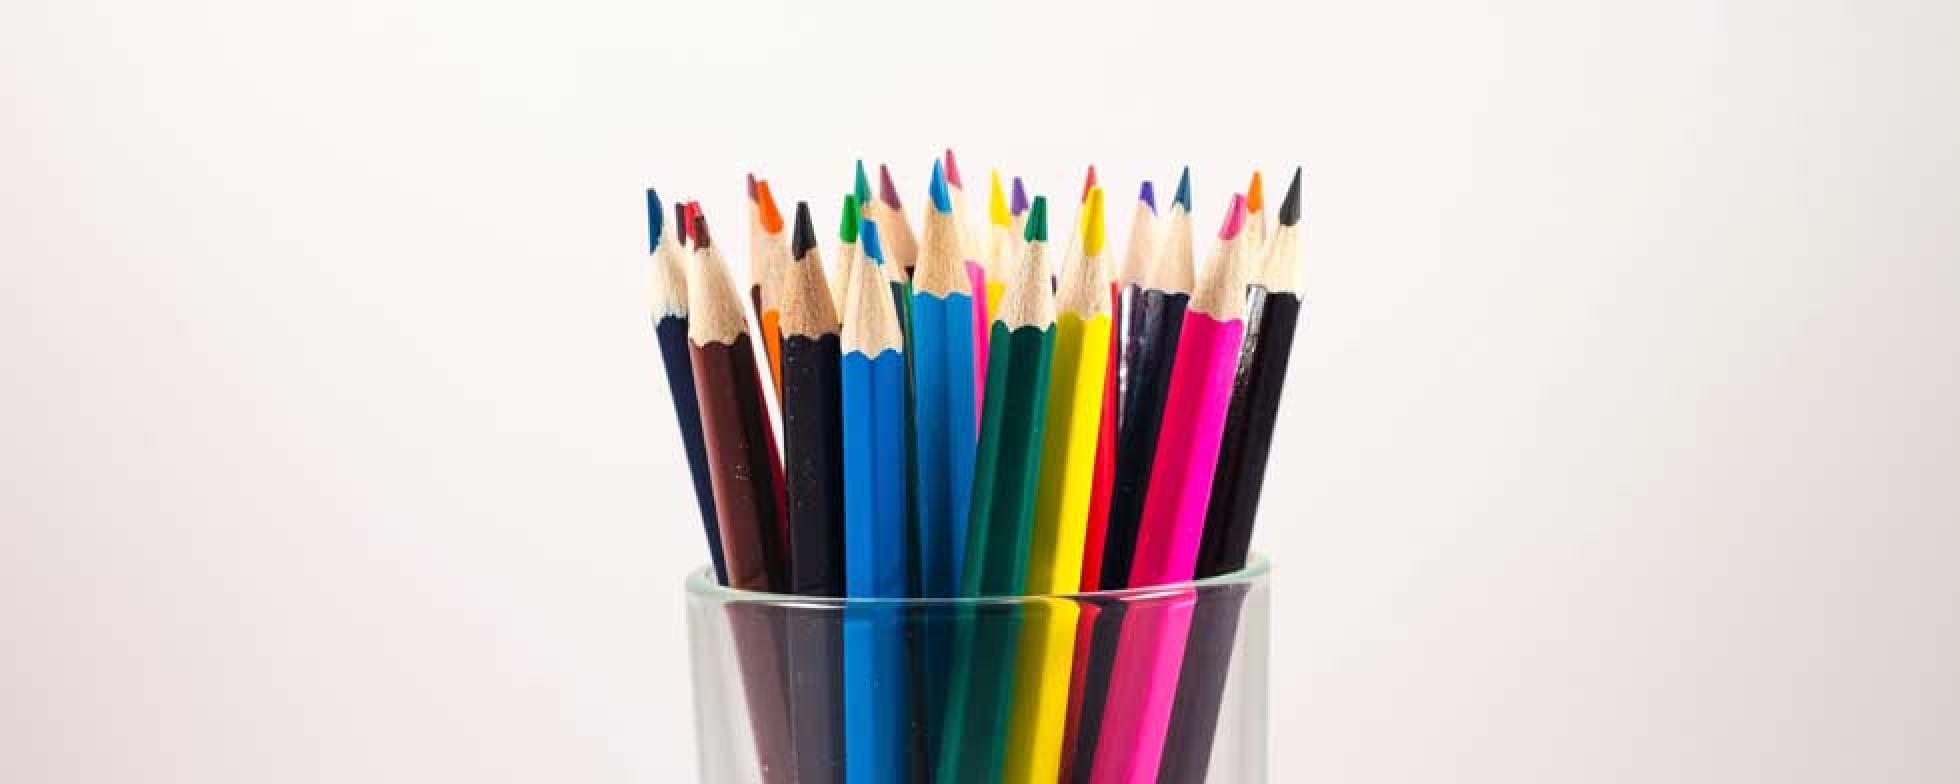 Coloured pencils in a glass.